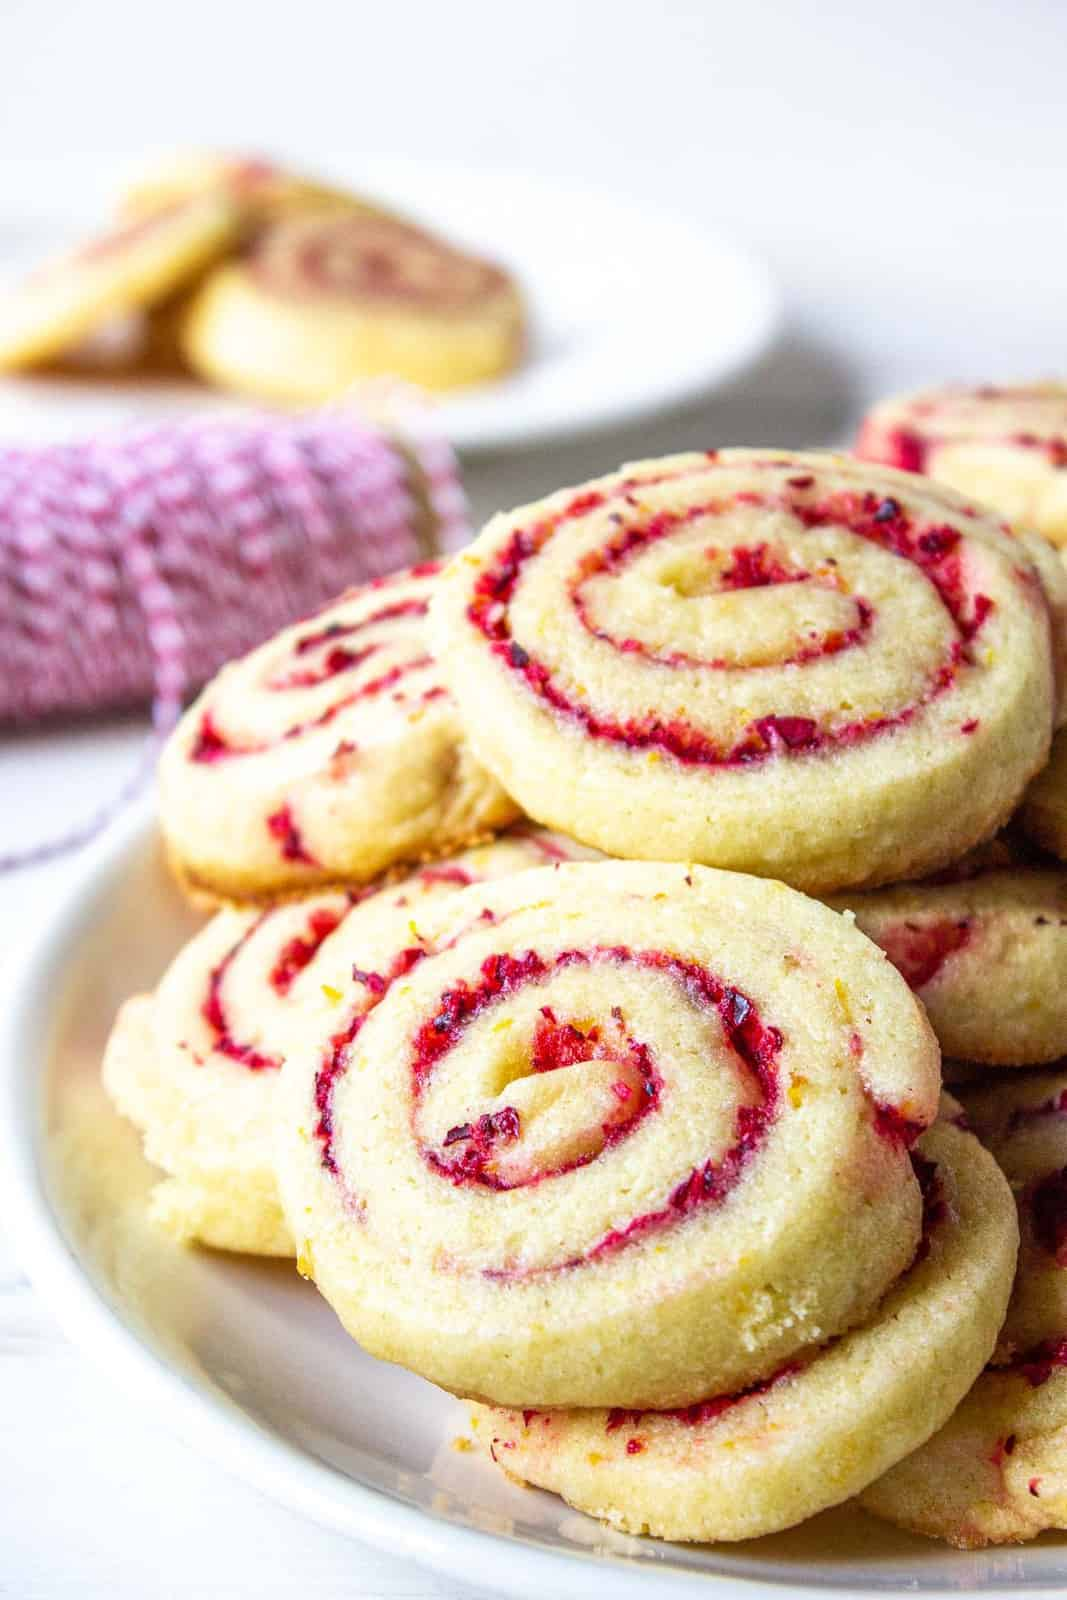 Cranberry orange cookies on a white plate.